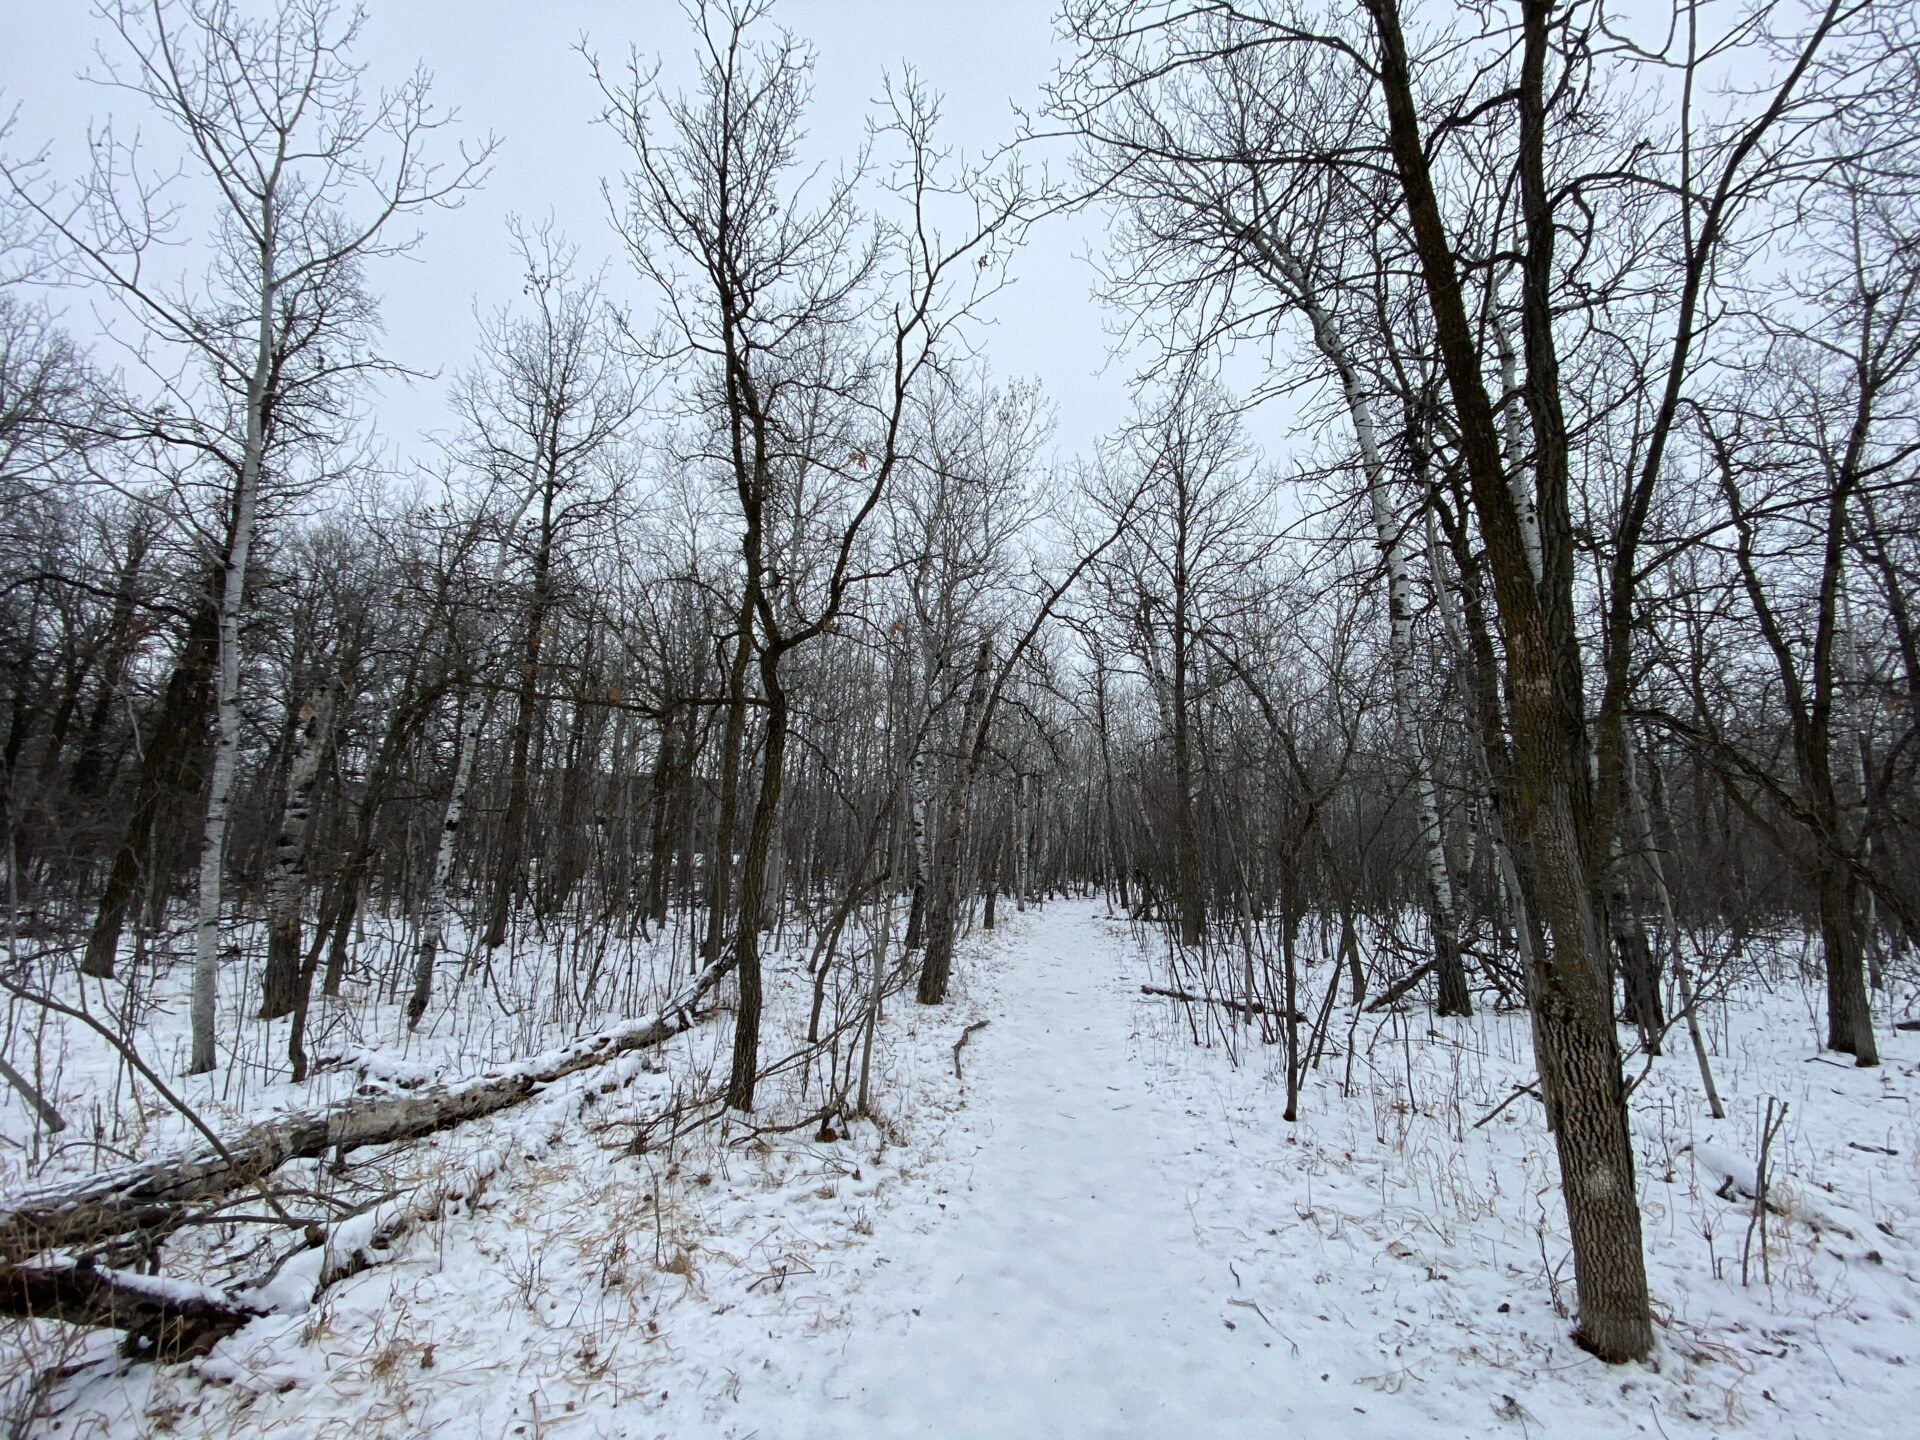 A hike through a nearby forest in winter